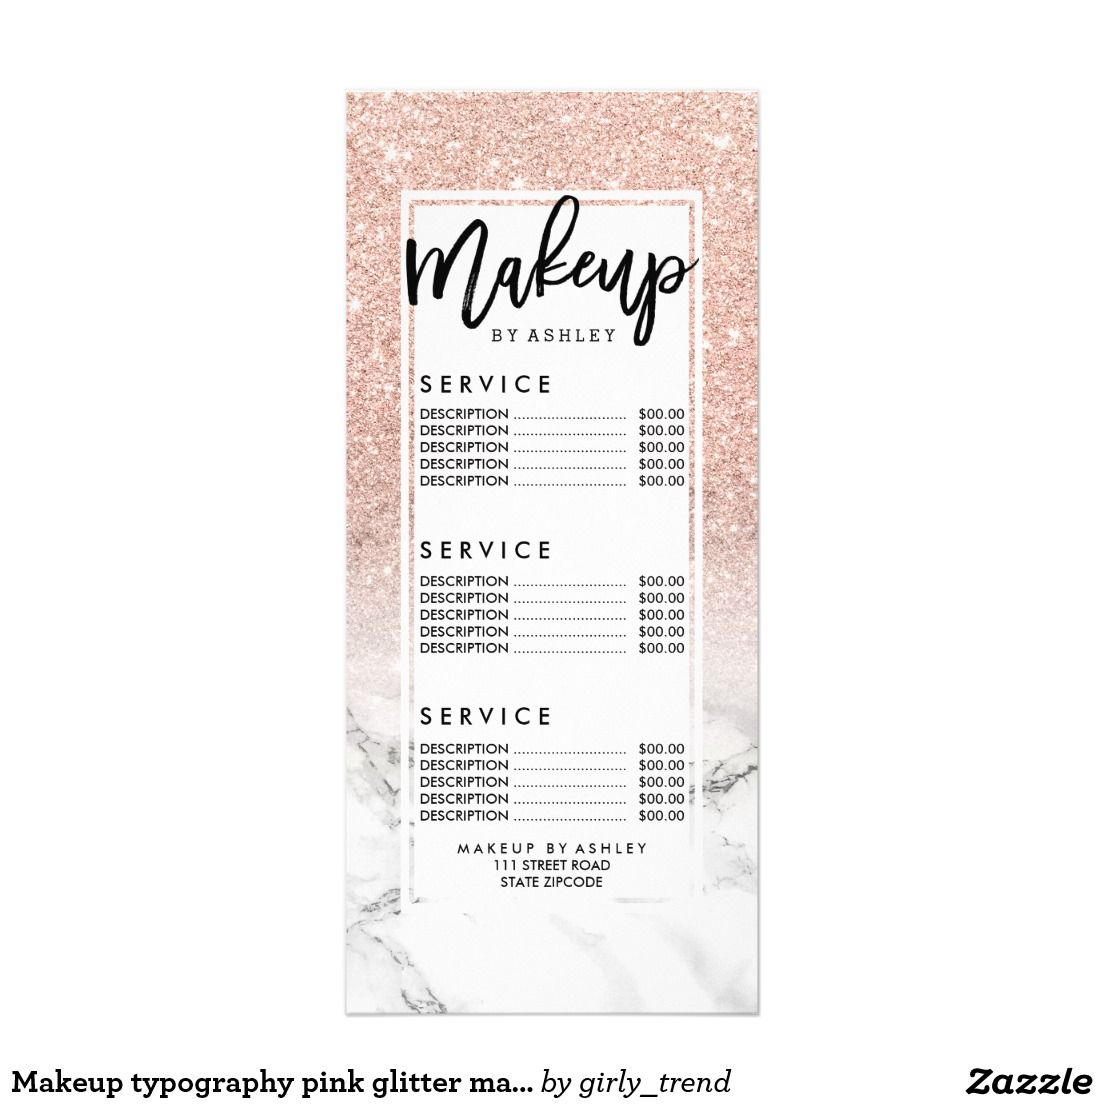 Makeup typography pink glitter marble price list rack card makeup typography pink glitter marble price list rack card marble pricebusiness card designbusiness colourmoves